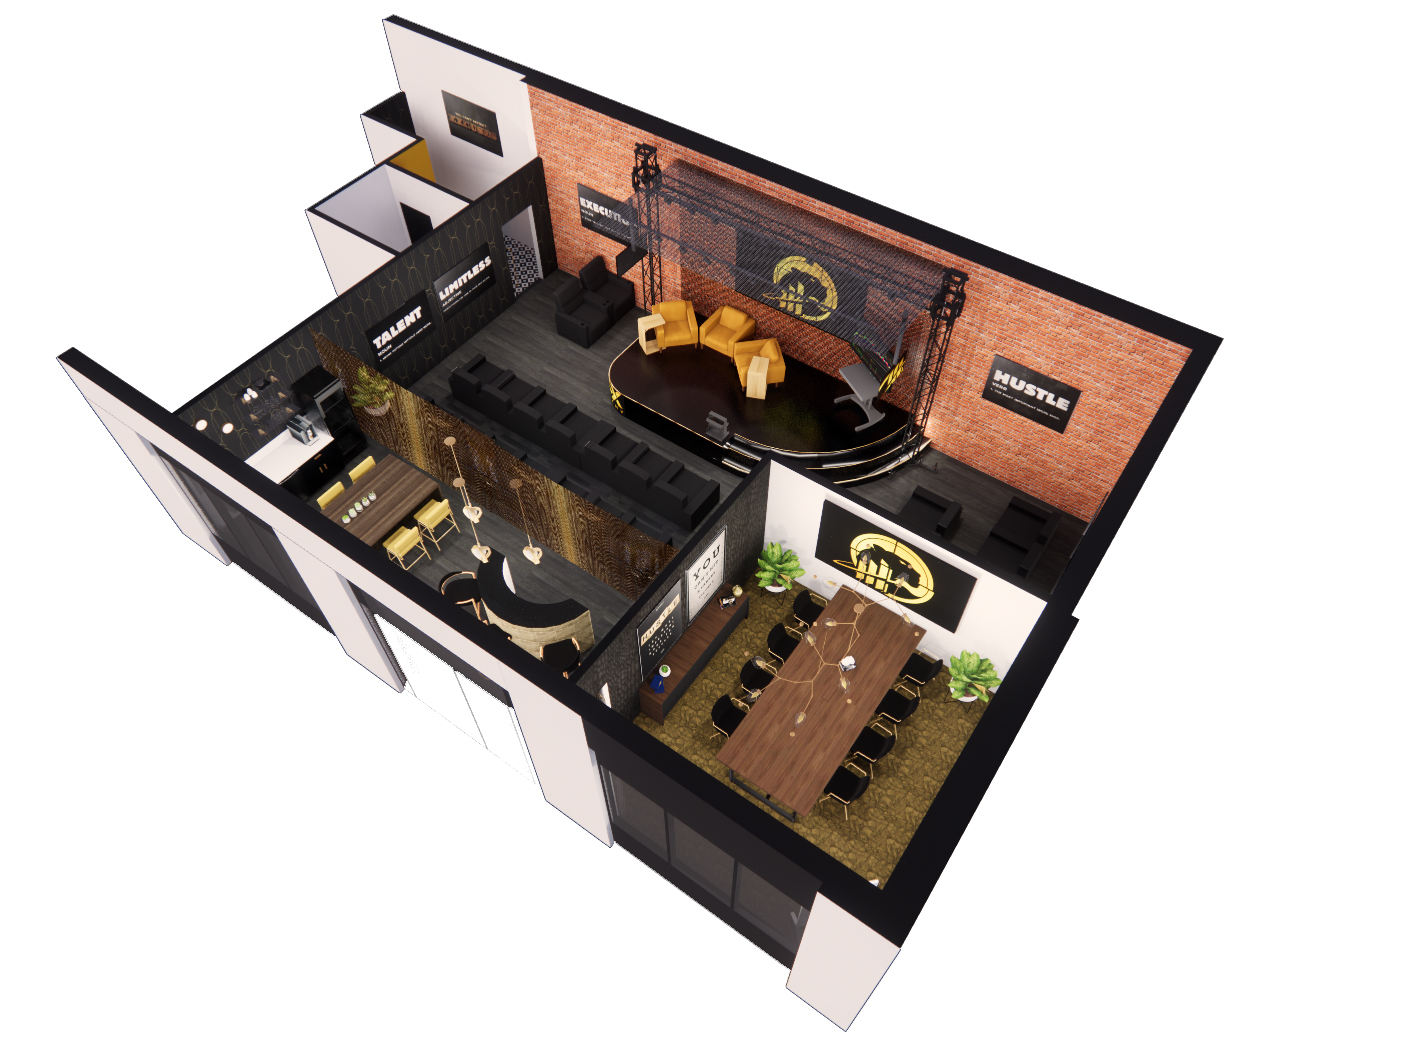 3D Floor plan multiuse space rendering stage event conference room branding high end gold brick moody design stylish